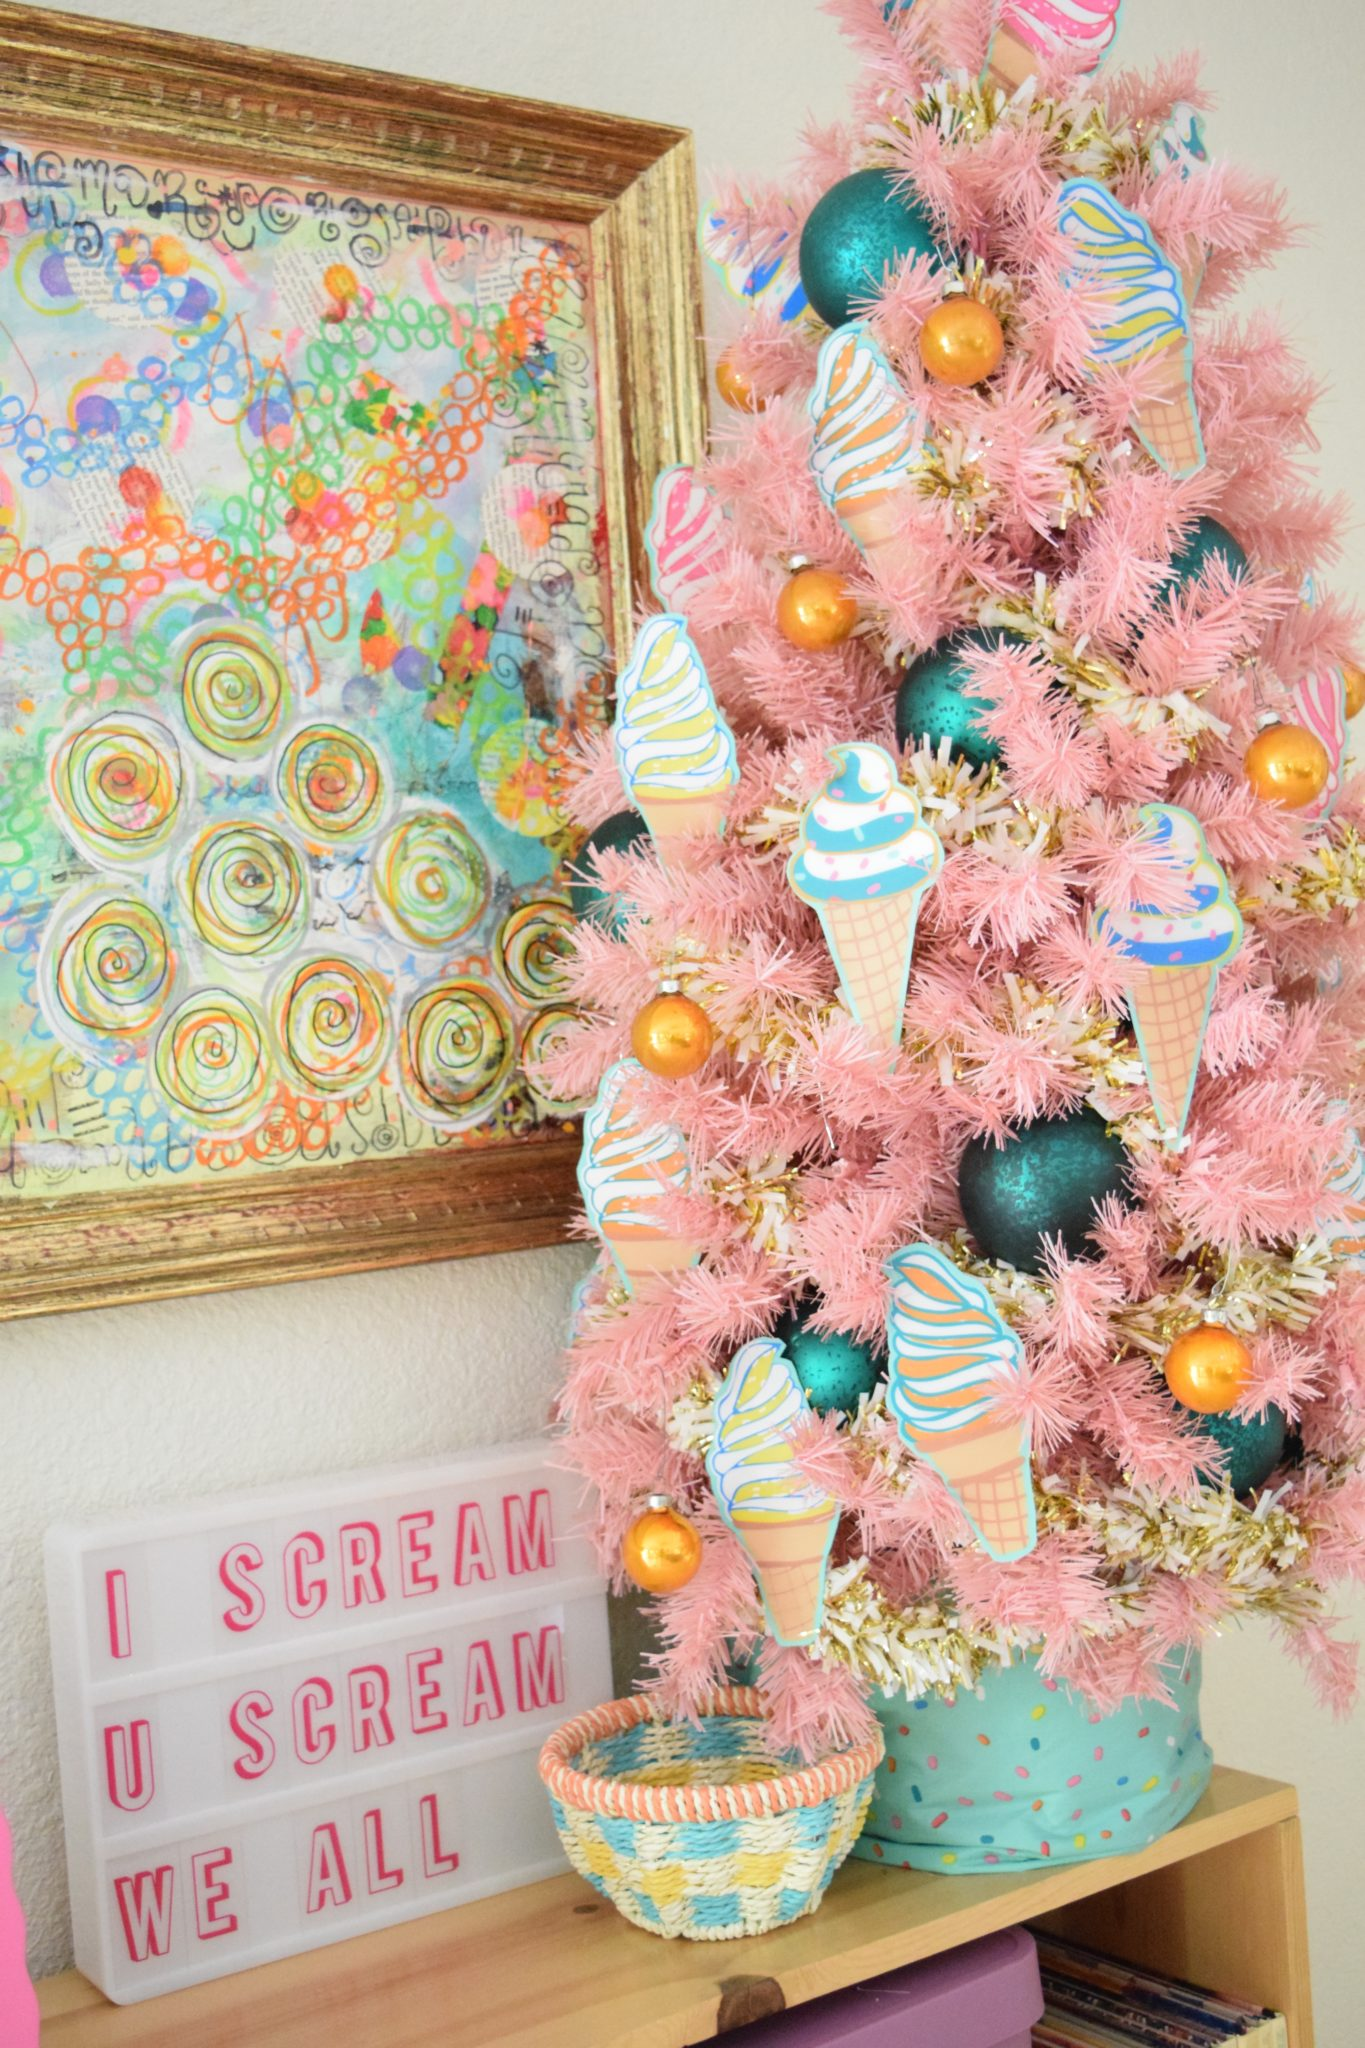 How to decorate an ice cream tree.